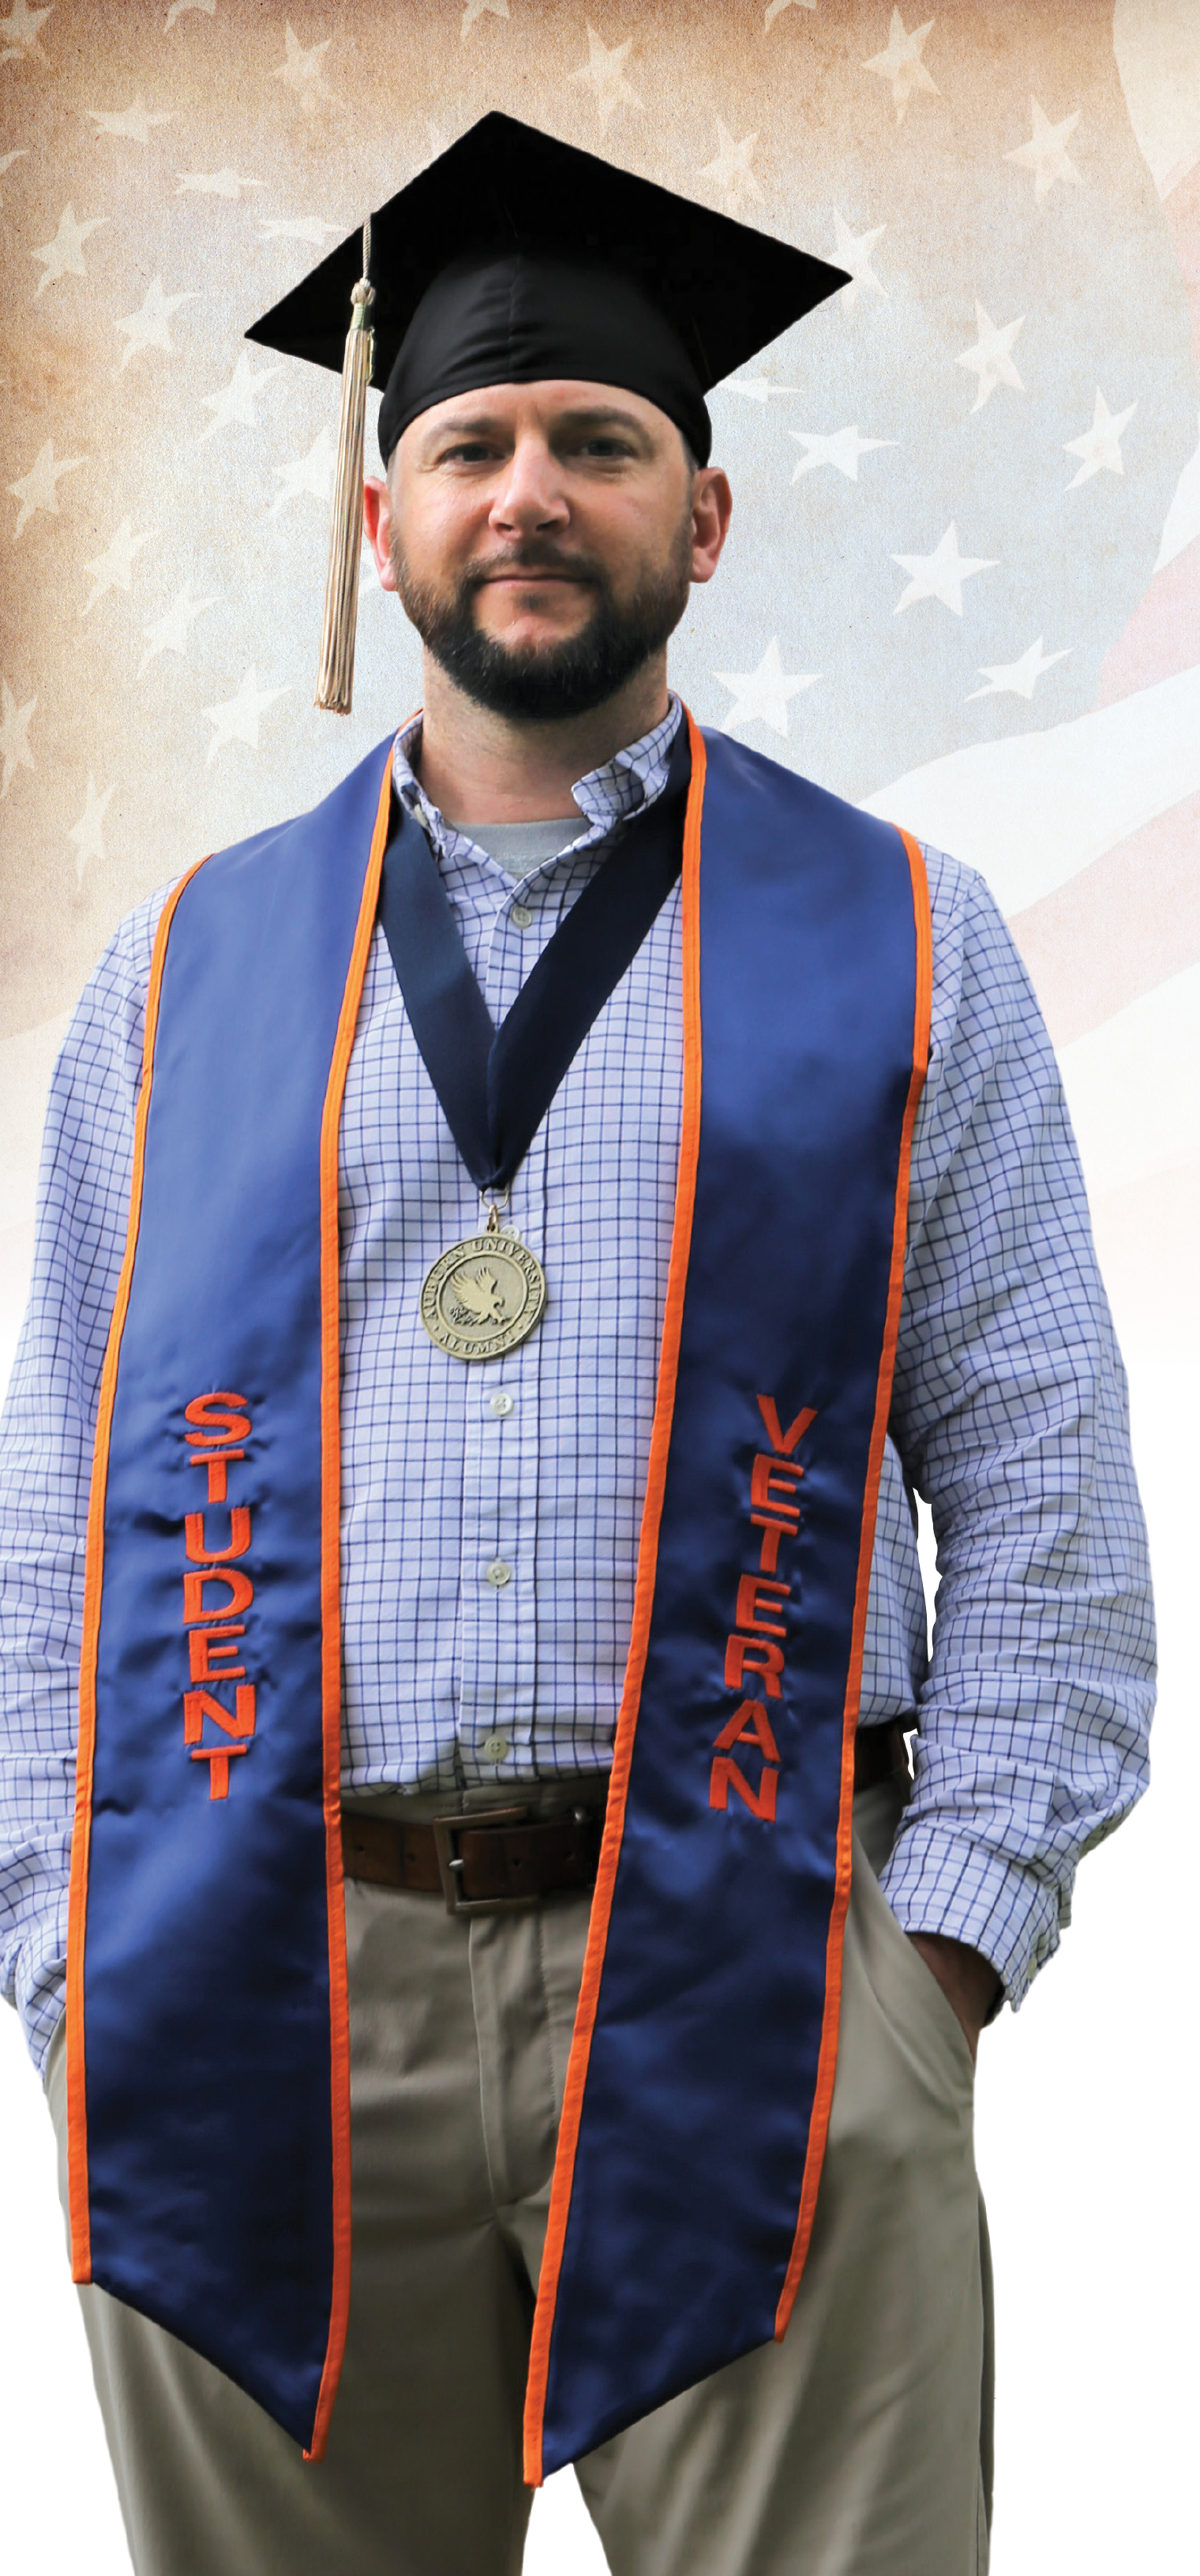 Kyle Venable in Student Veteran stole